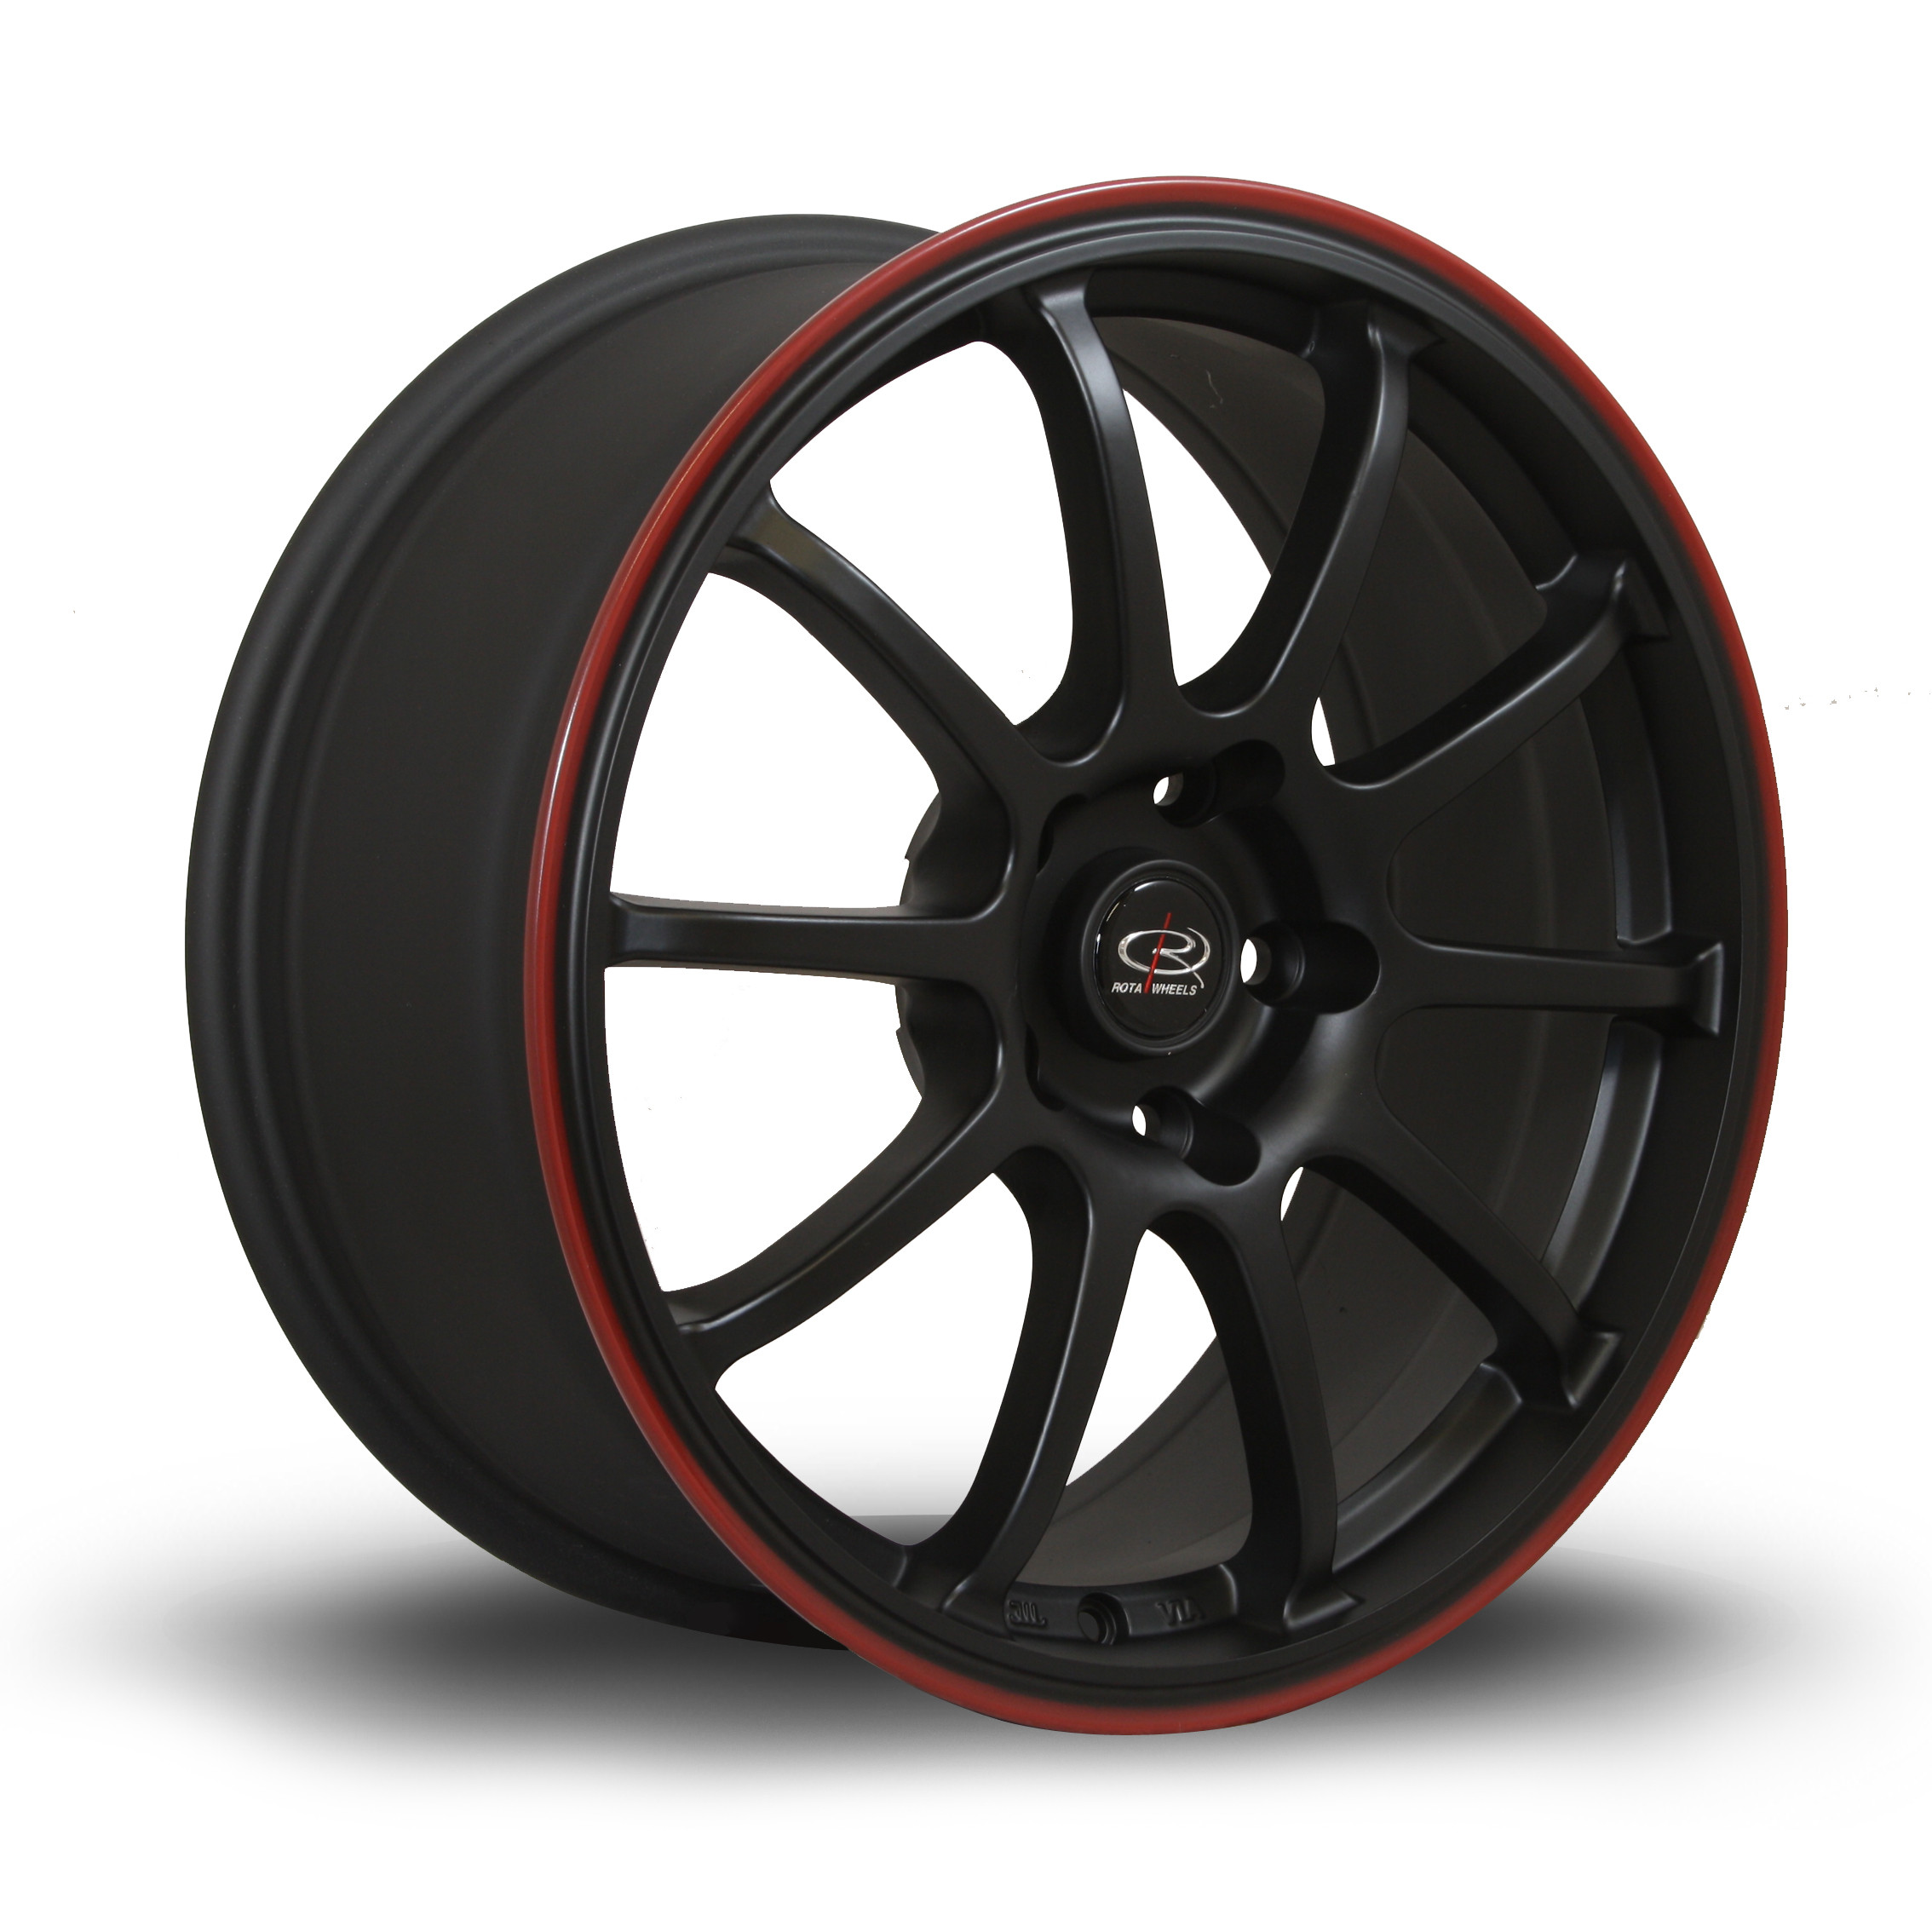 Force 17x8 5x114 ET35 Flat Black with Red Lip